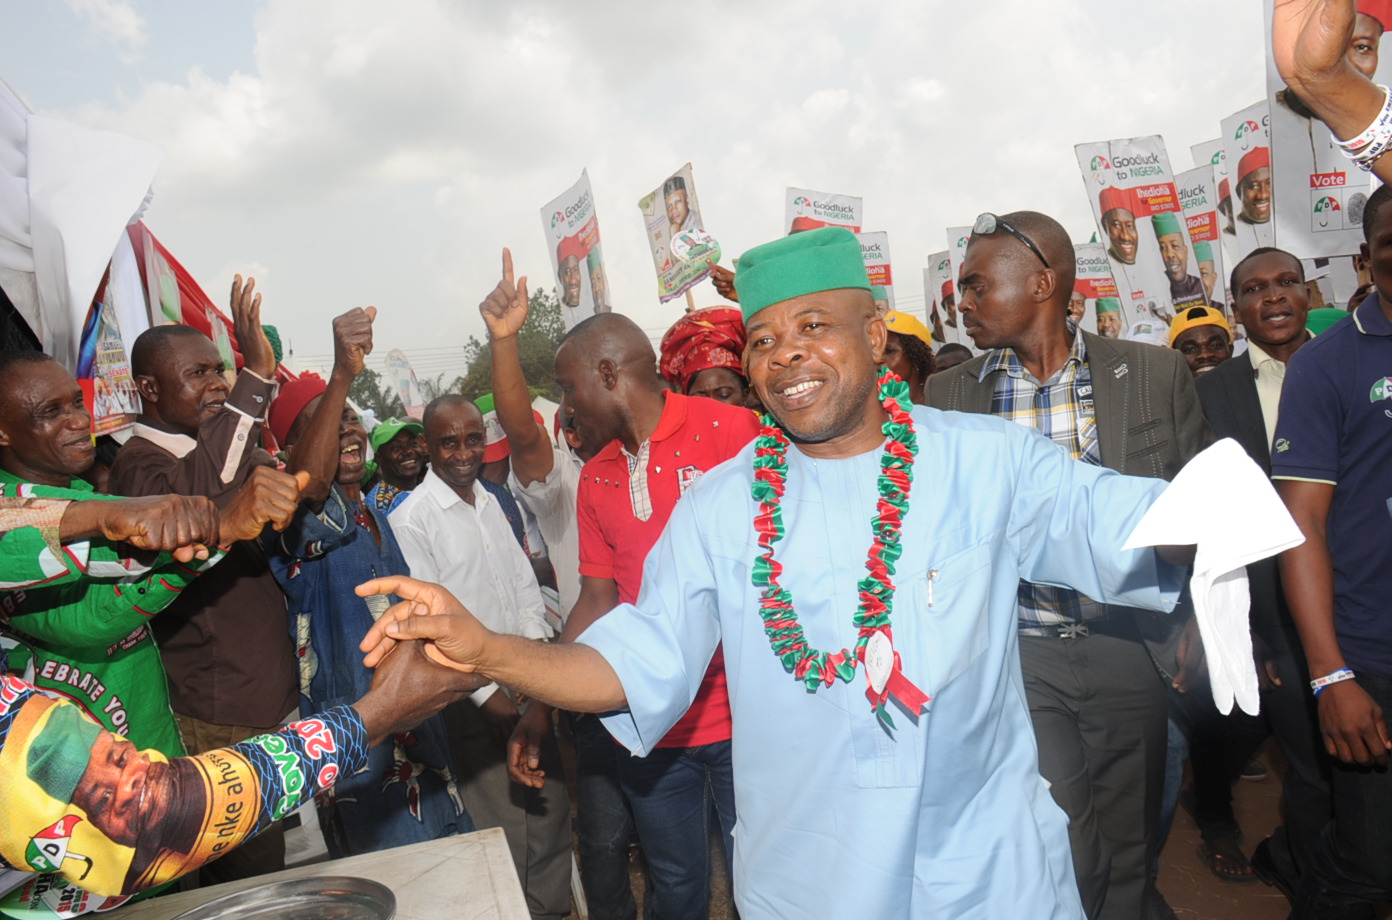 Imo State PDP Govrenorship Candidate and Deputy Speaker, House of Reps Hon. Emeka Ihedioha acknowledging cheers from his teaming supporters  during the Governorship Campaign Rally at St Mary's Catholic Church Ubomiri , Imo State last weekend 24/01/15